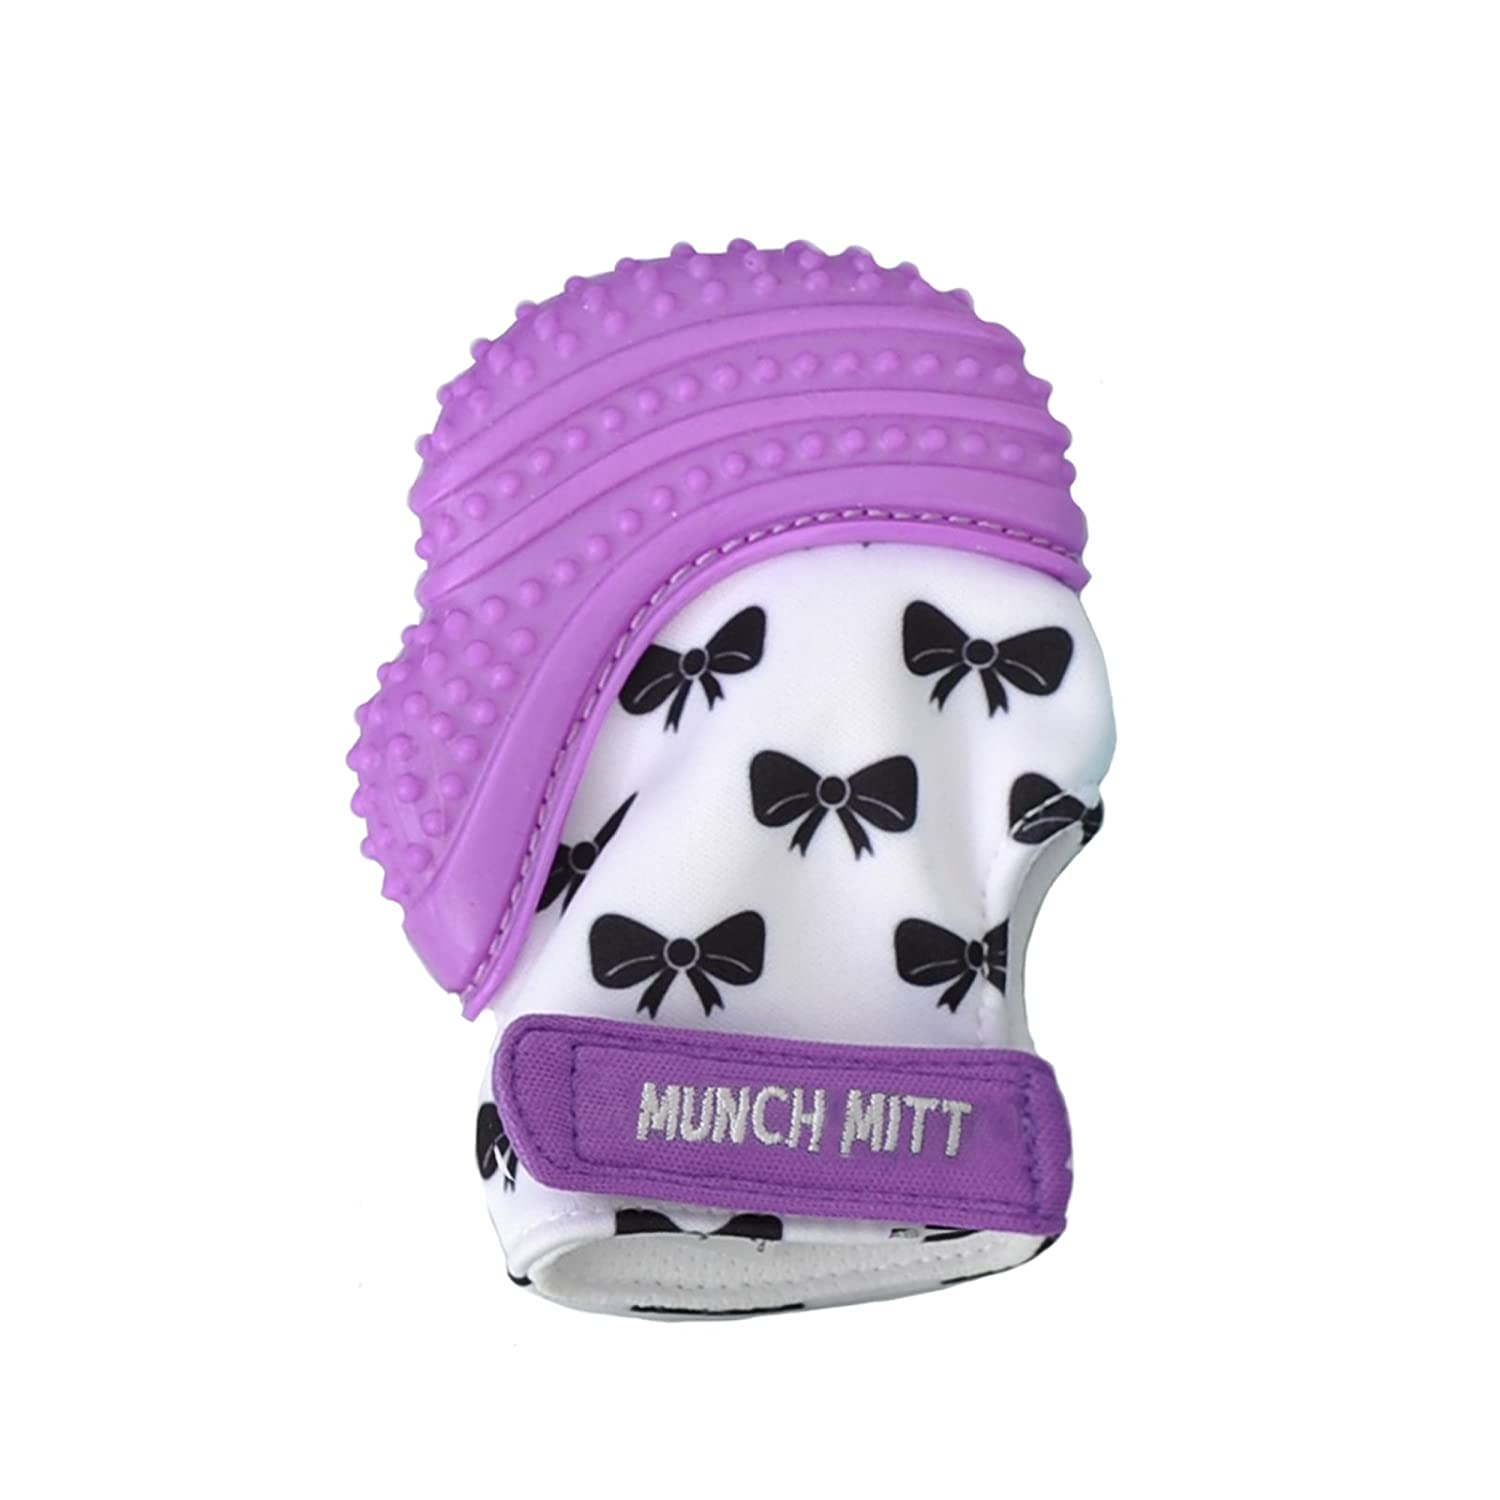 Munch Mitt Teething Mitten the Original Mom Invented Teething Toy- Teether Stays on Babys Hand for Pain Relief & Stimulation- Ideal Baby Shower Gift with Handy Travel/Laundry Bag- Purple Bows